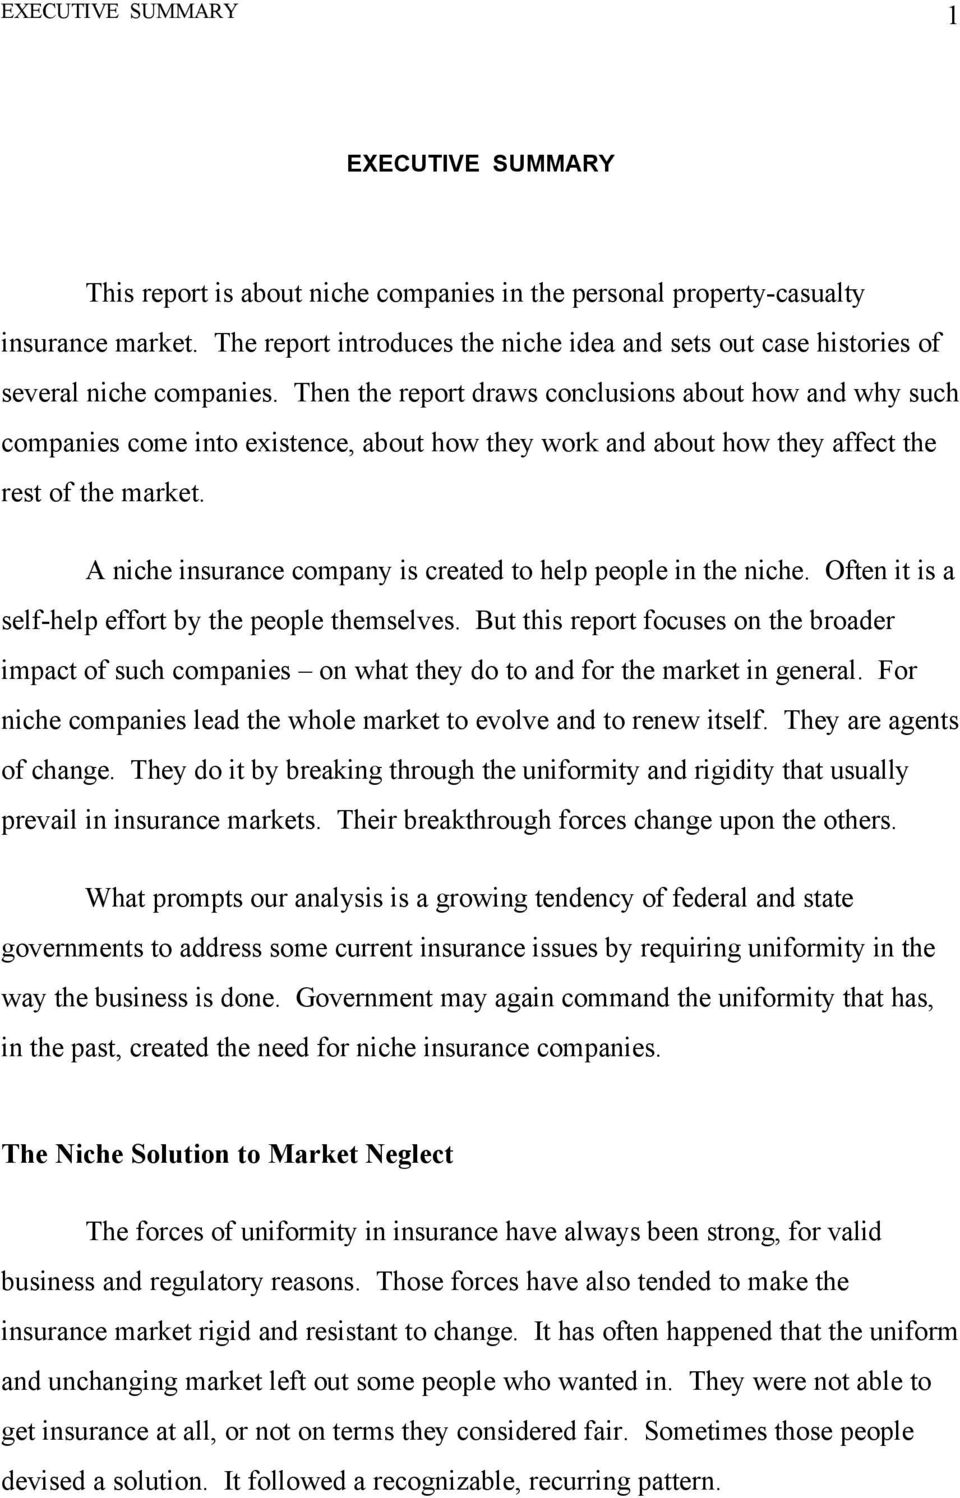 Then the report draws conclusions about how and why such companies come into existence, about how they work and about how they affect the rest of the market.